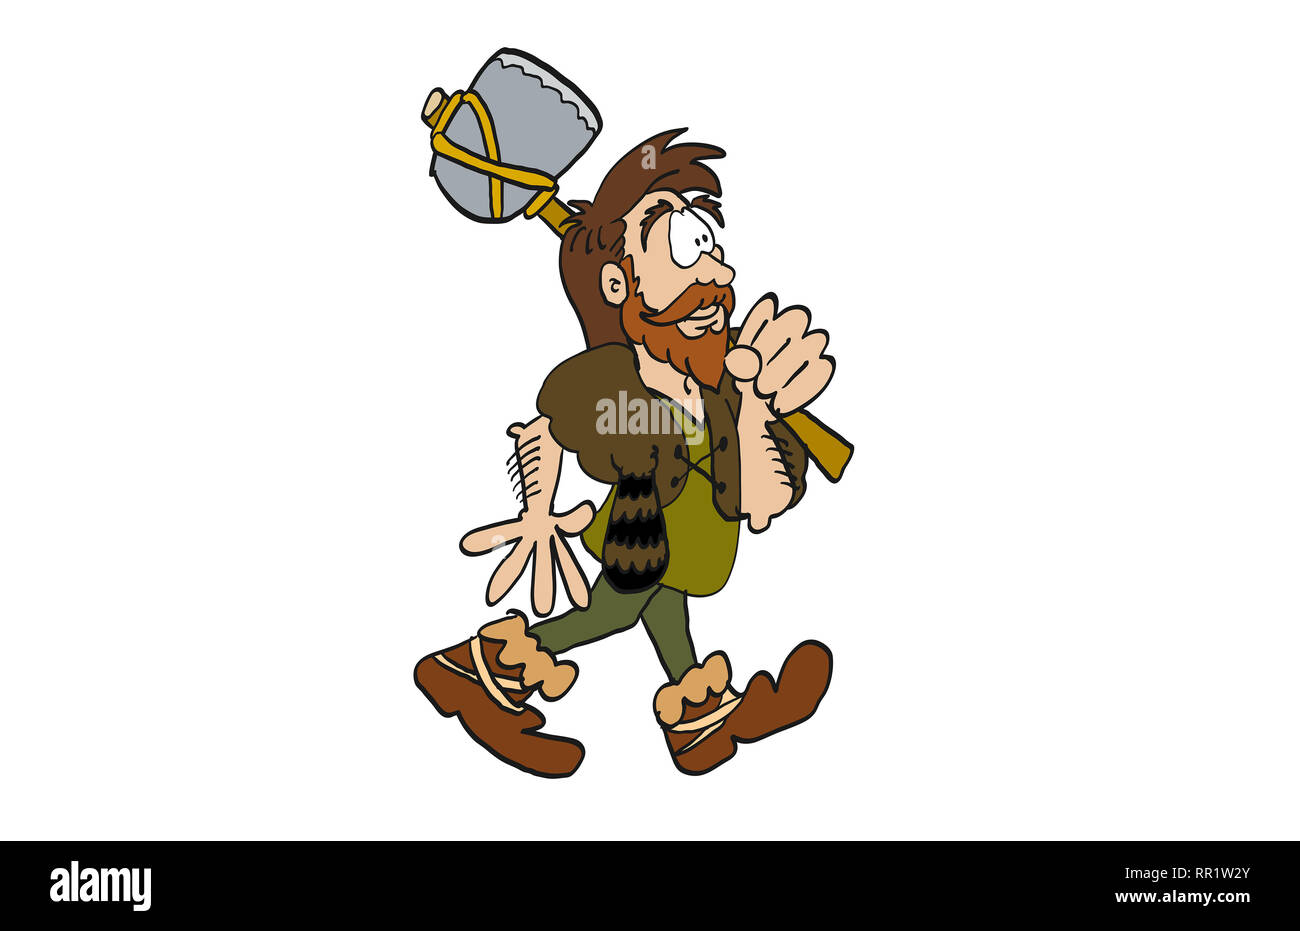 Iron age man with axe - Stock Image